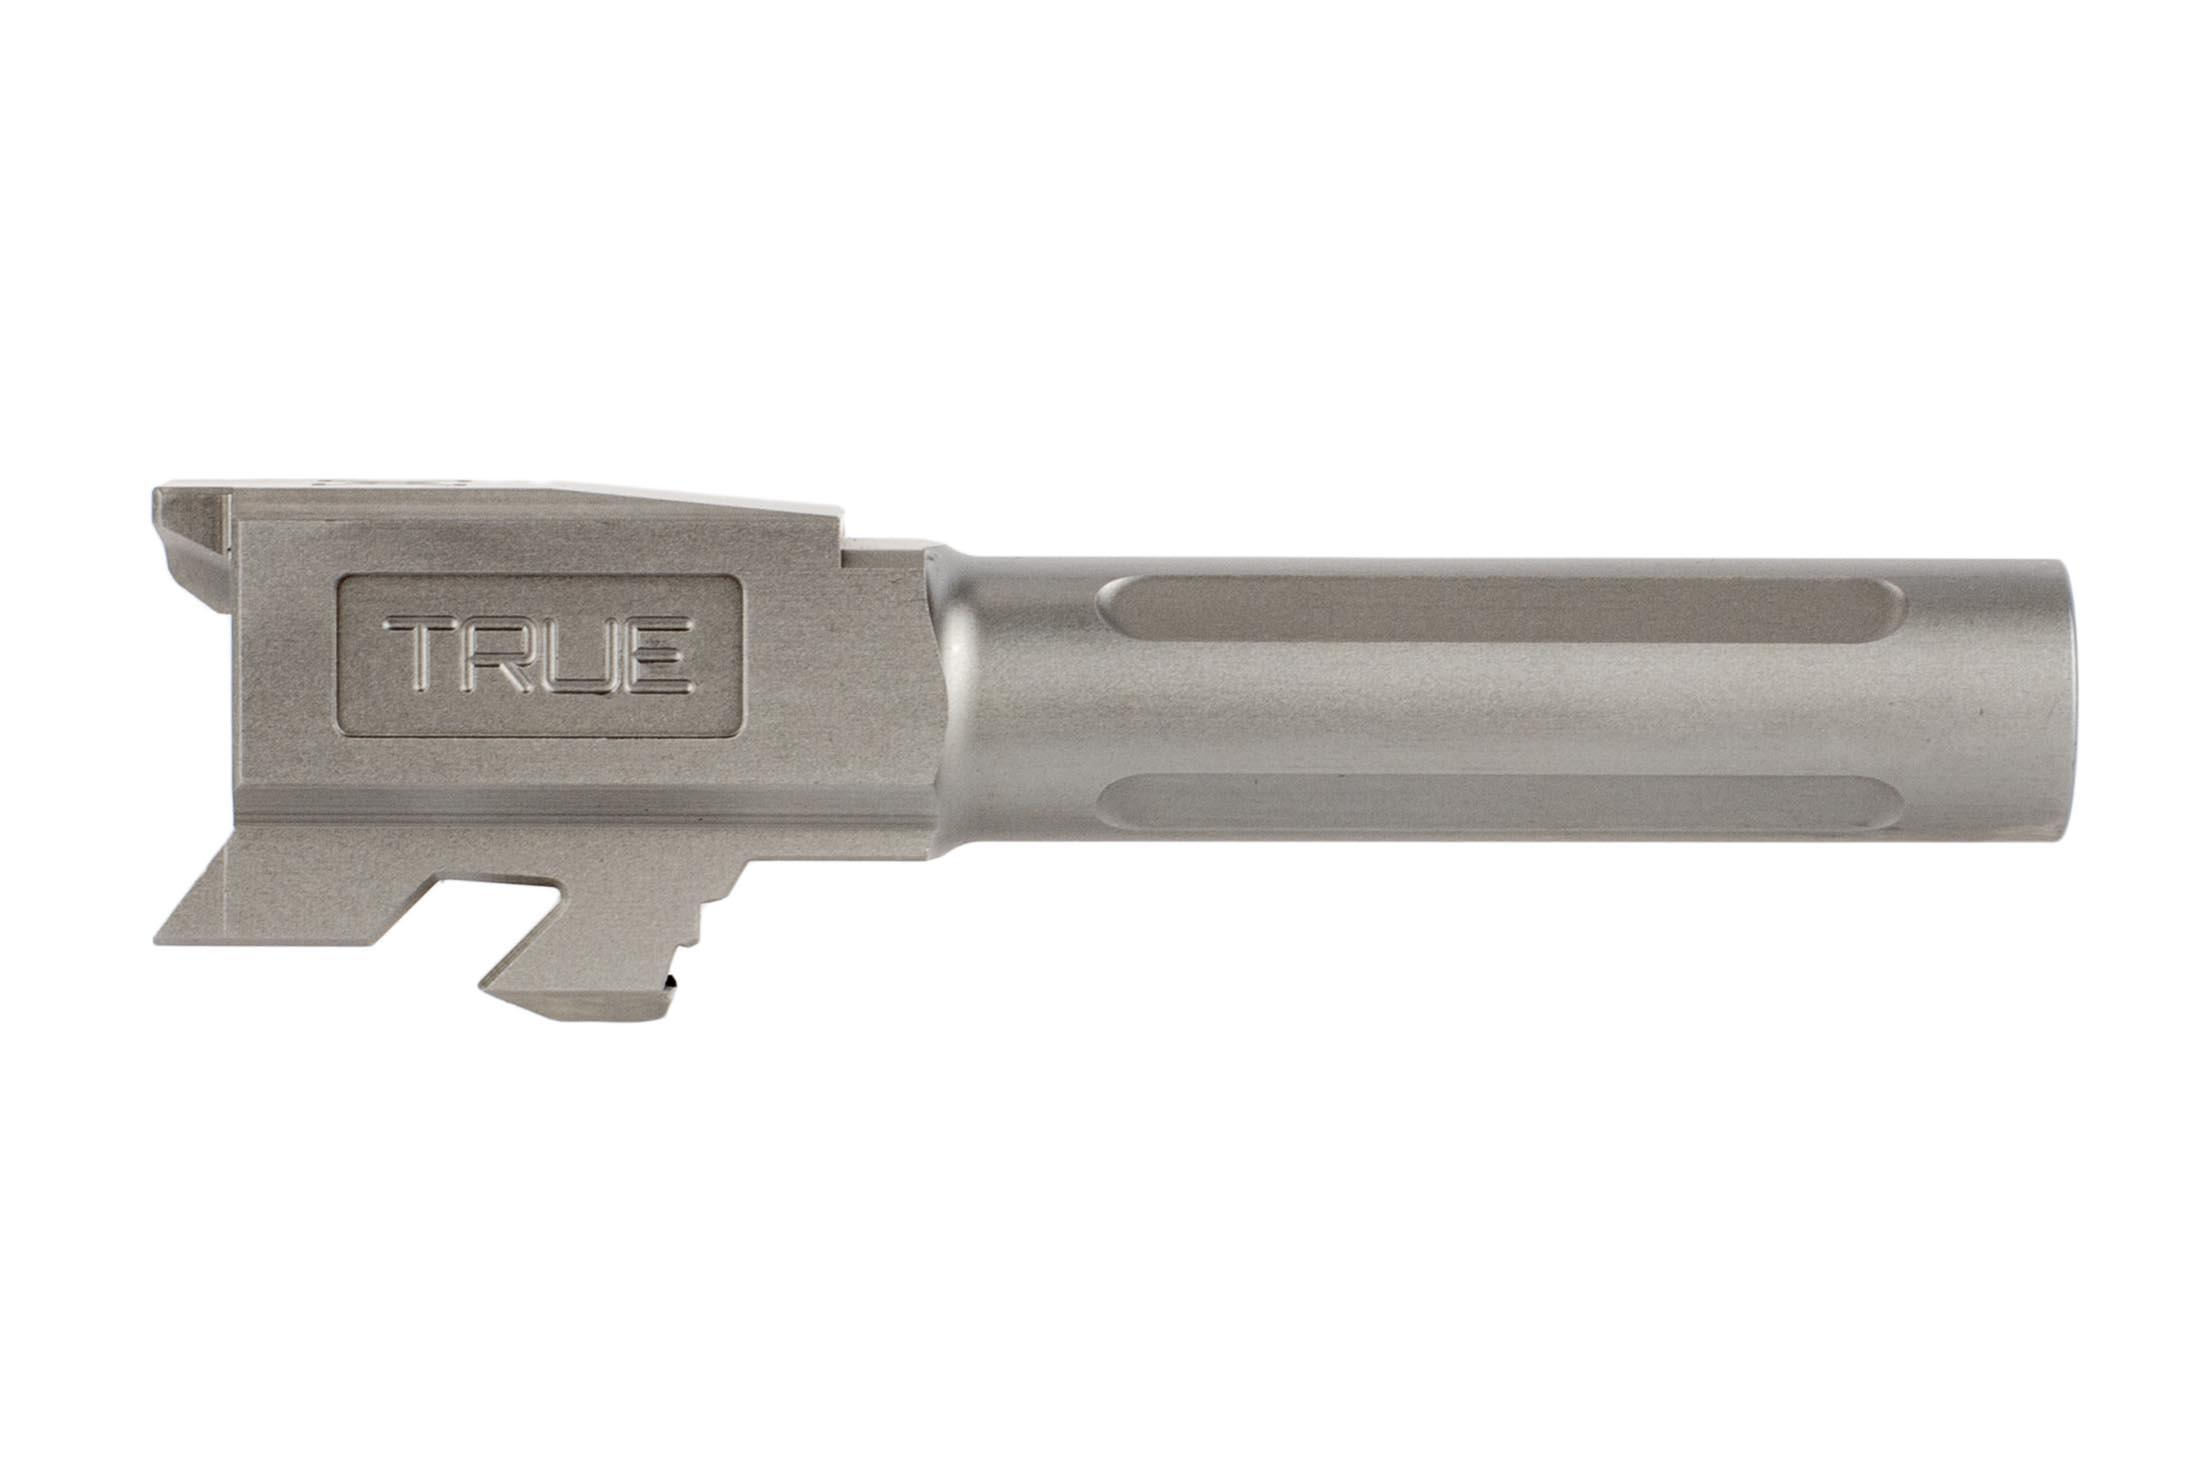 TRUE Precision Glock 43 Compatible 9mm Non-Threaded Barrel - Stainless